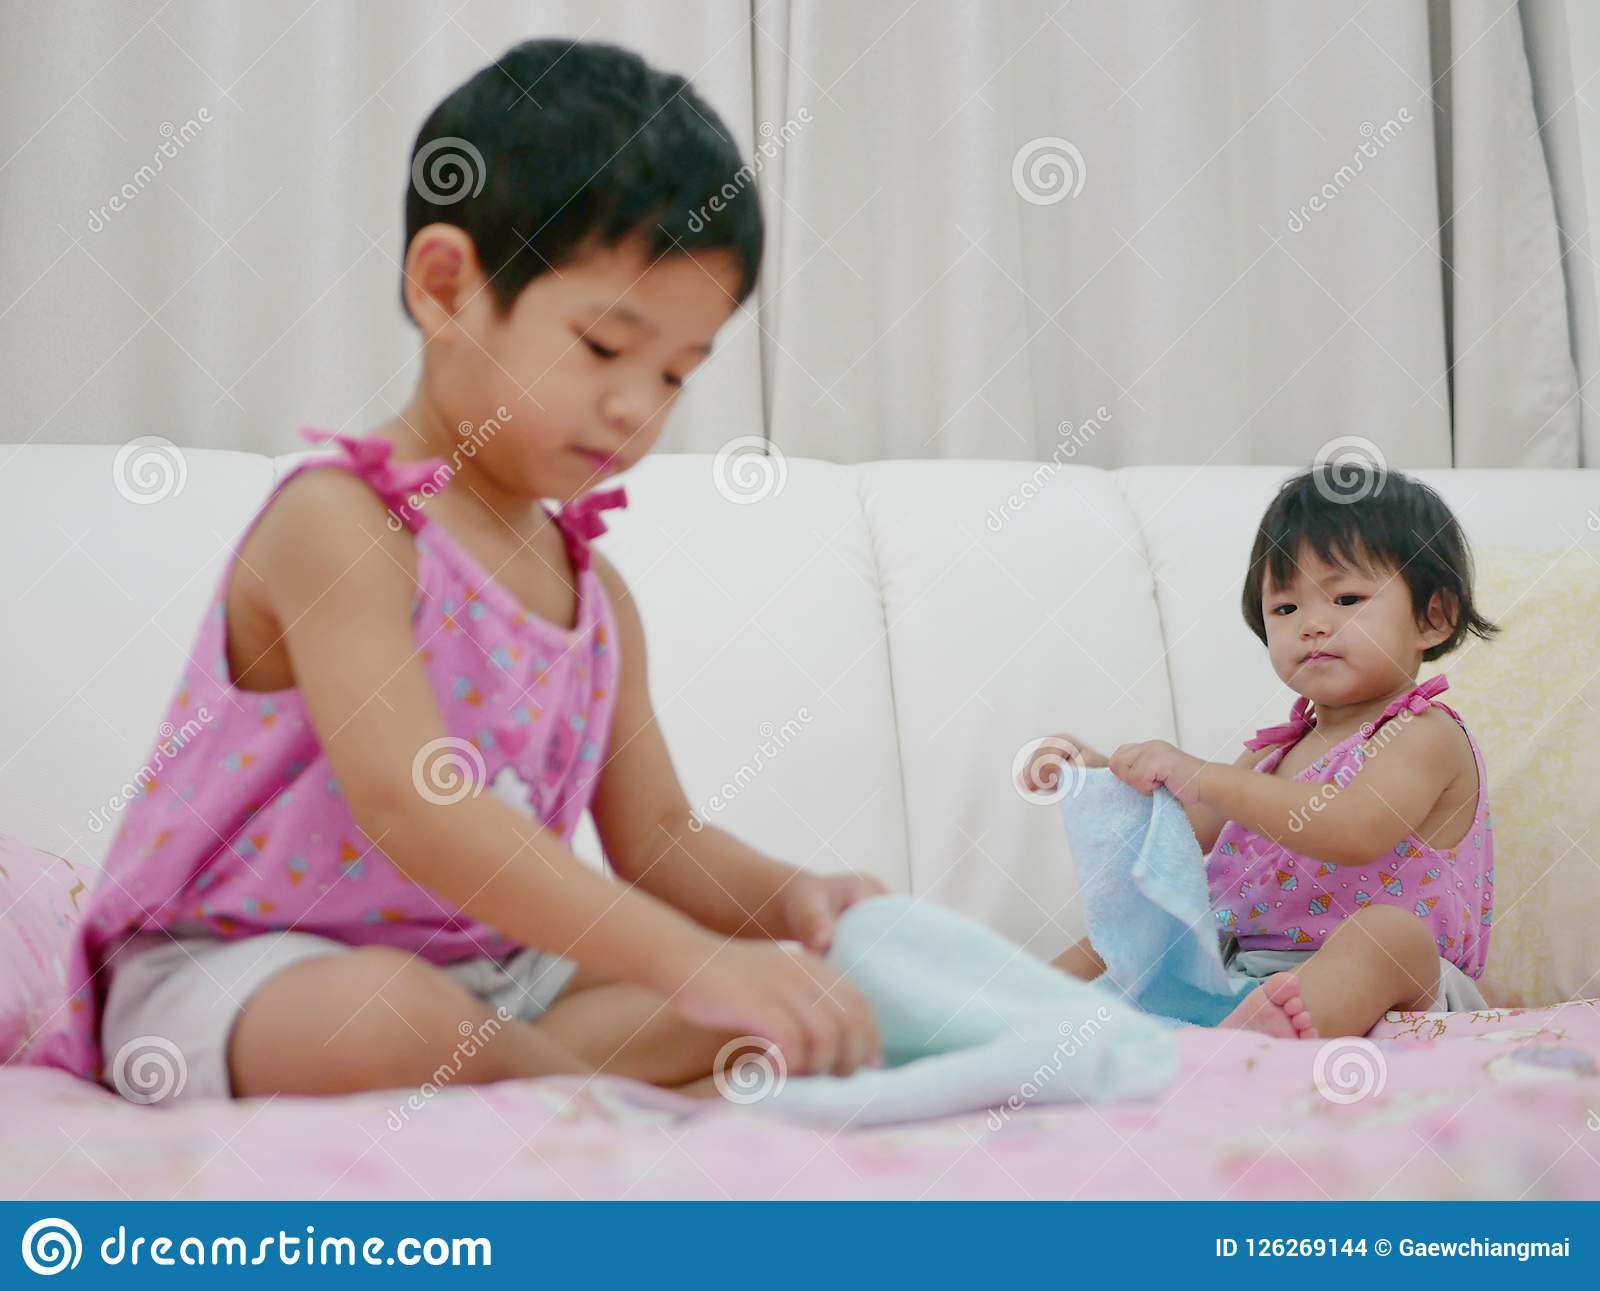 Little Asian baby girl, 18 months old, her older sister folding clothes and try to do the same thing